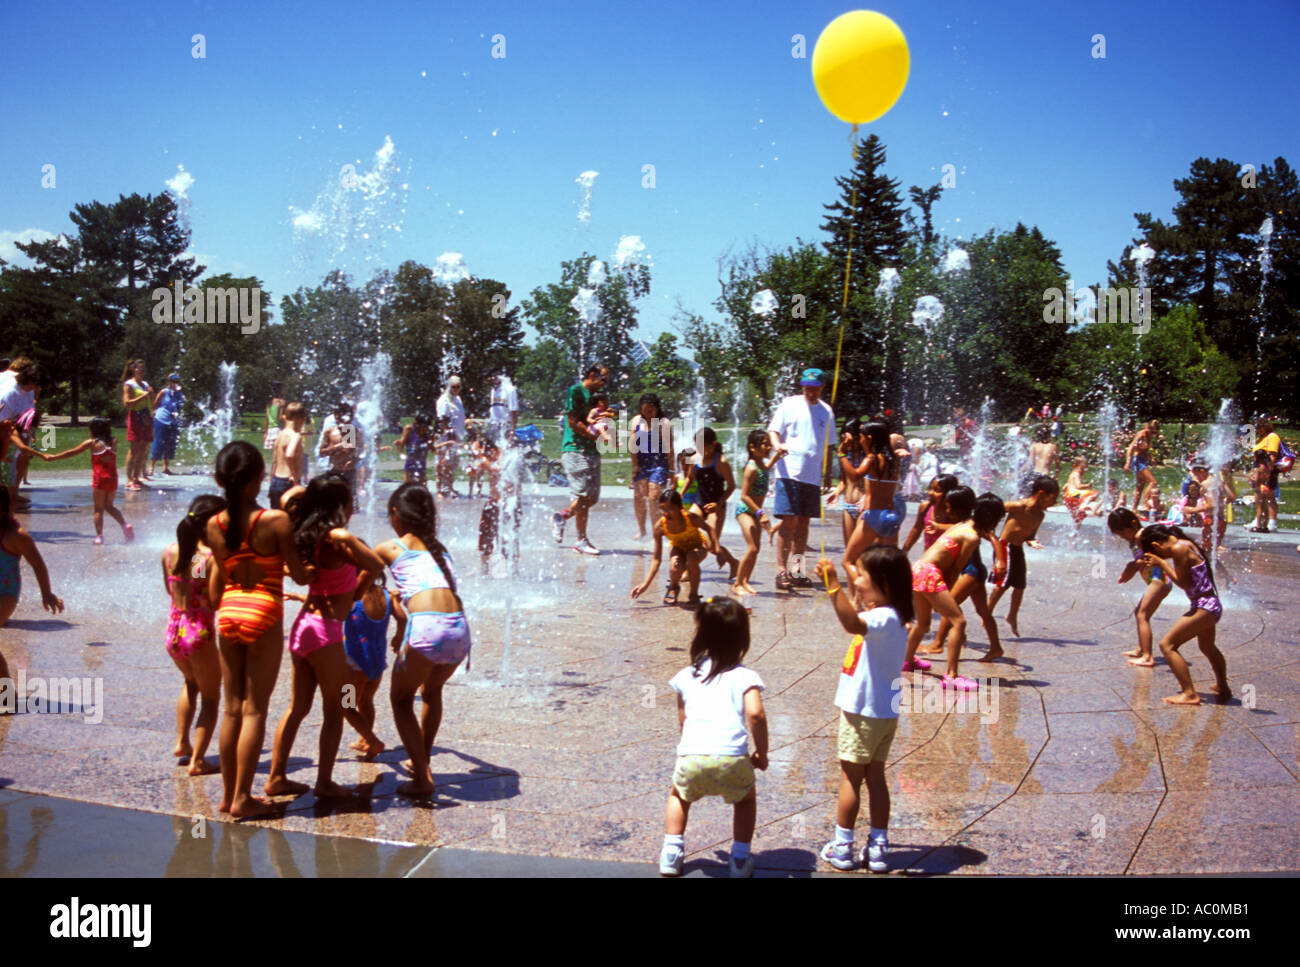 children-playing-in-a-public-fountain-in